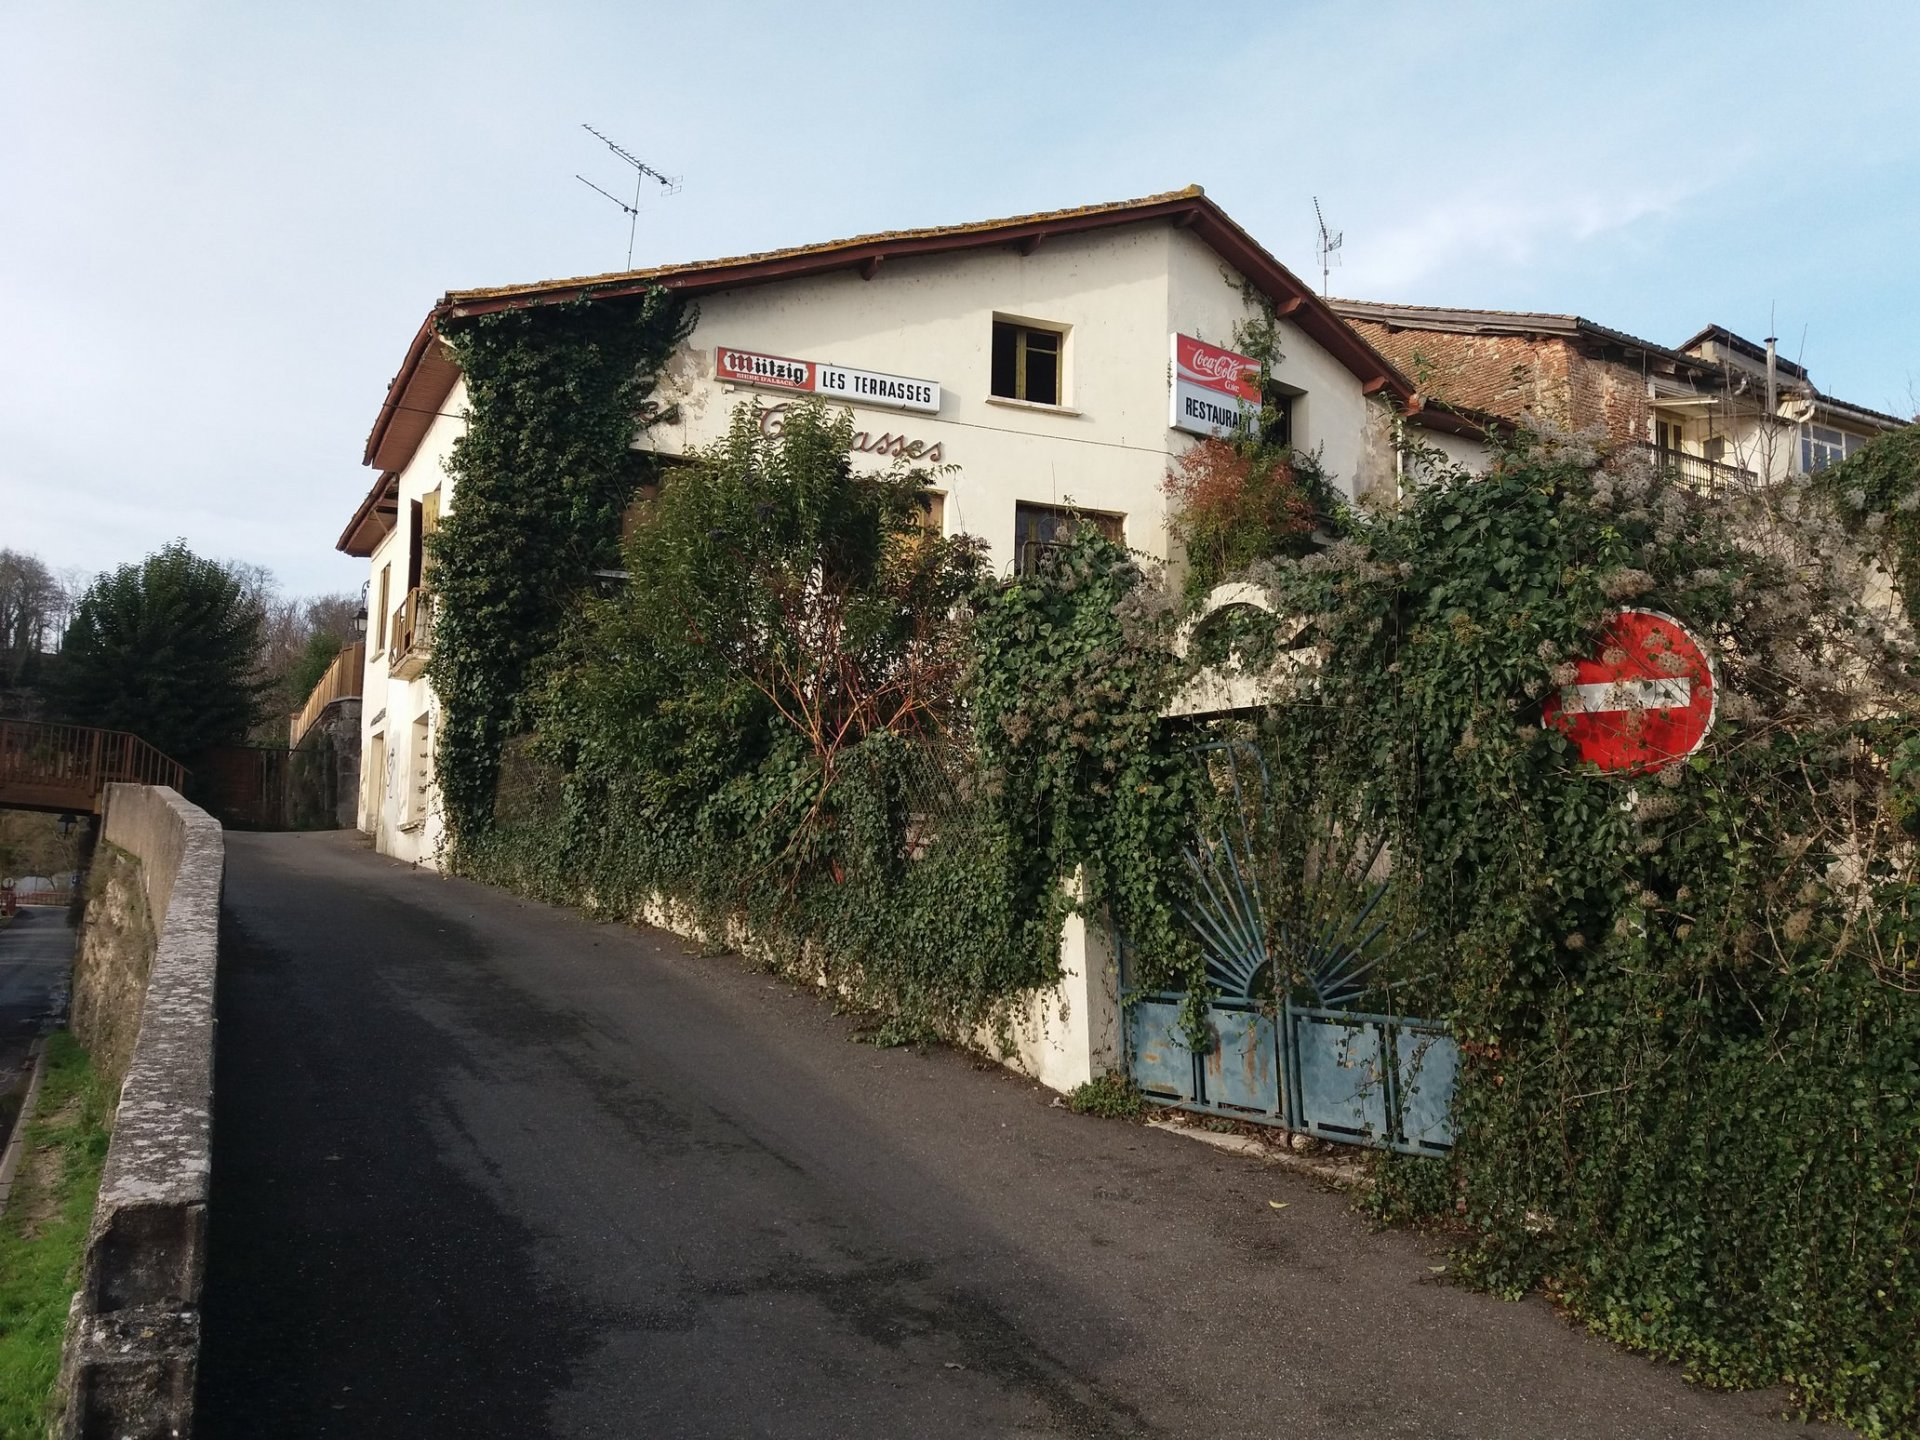 Old hotel with a restaurant and bar, situated on the border of the river Lot